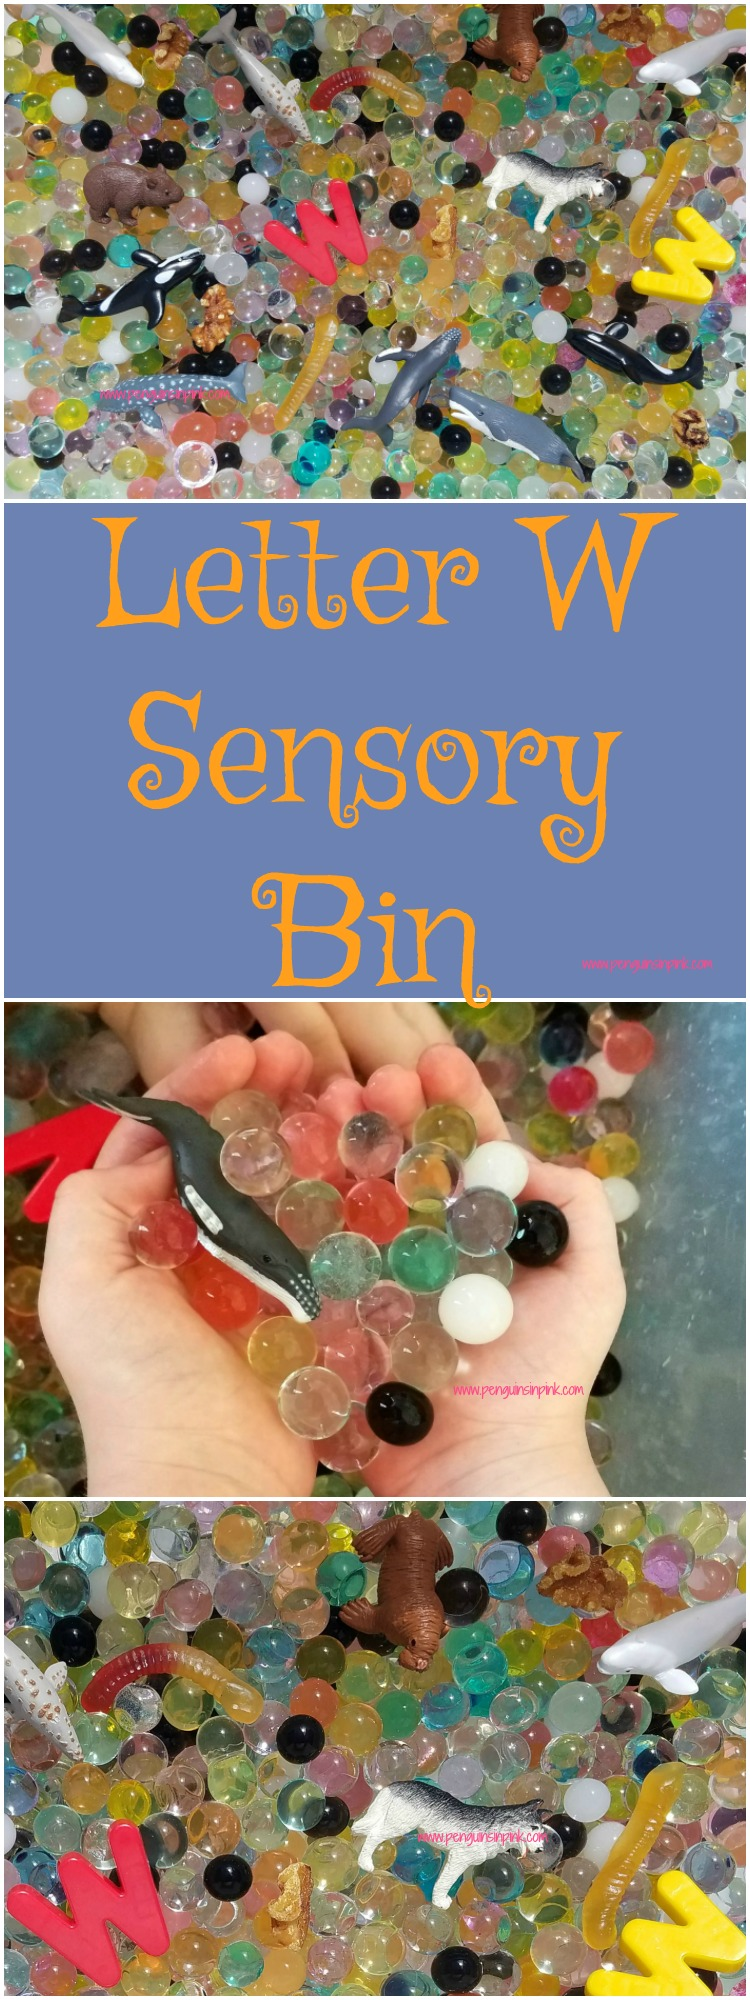 "Letter W Sensory Bin - This water bead based sensory bin has it all whales, walnuts, walrus and other items beginning with the letter ""W""."